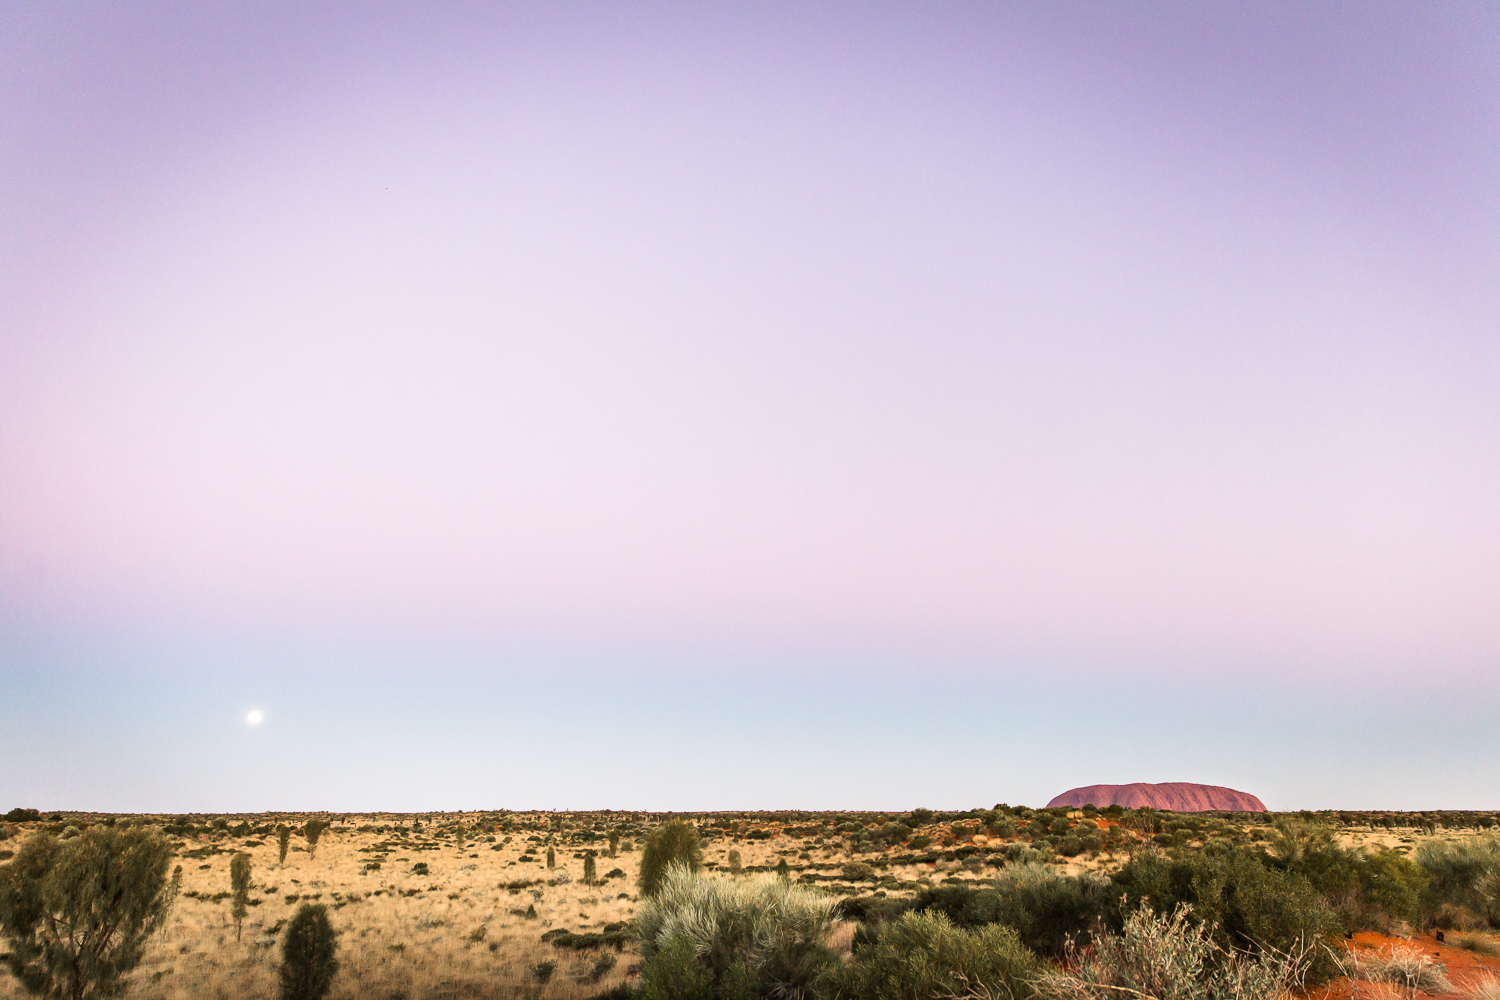 Lean+Timms+Uluru++(51+of+57).jpg